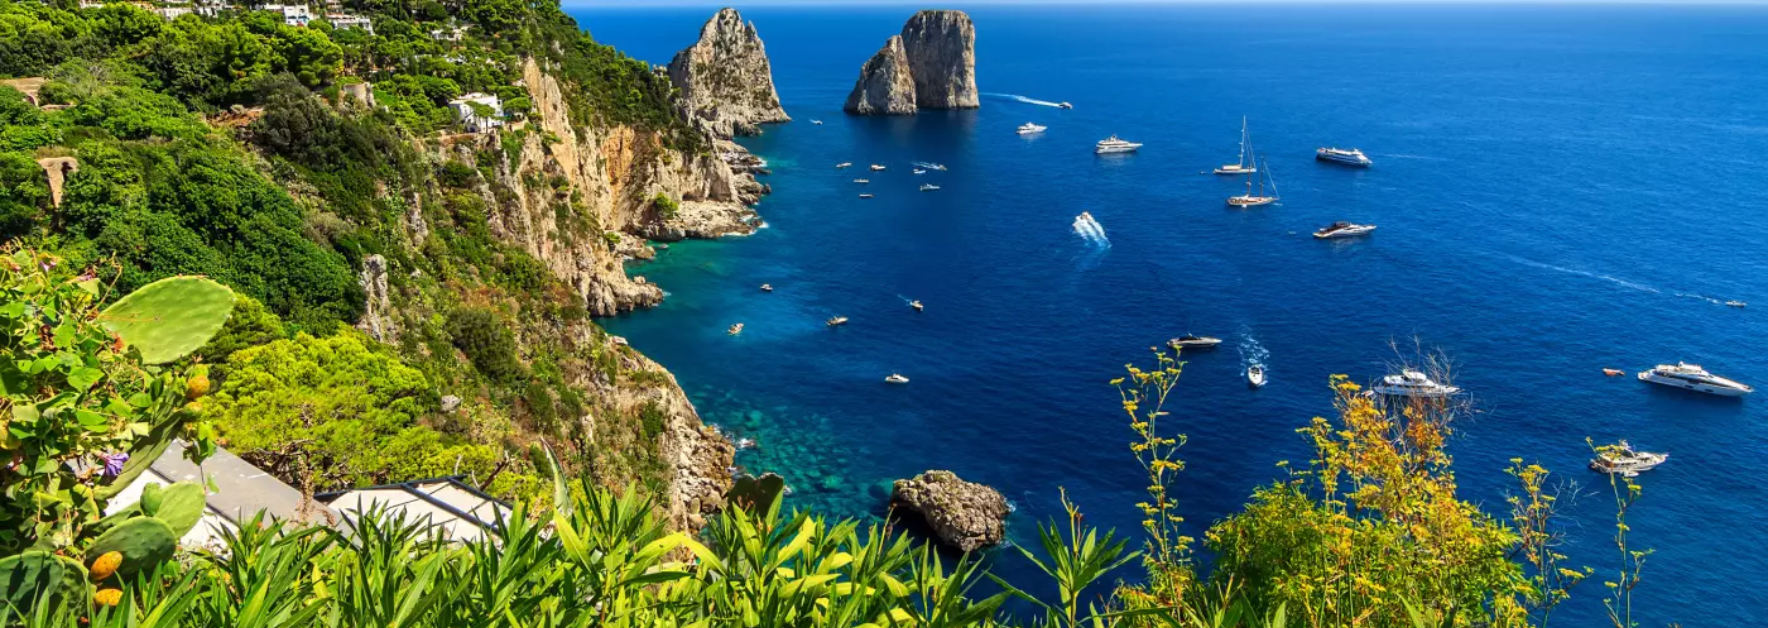 Join Our Italy Bellissimo Tour July 16 – 26 2020